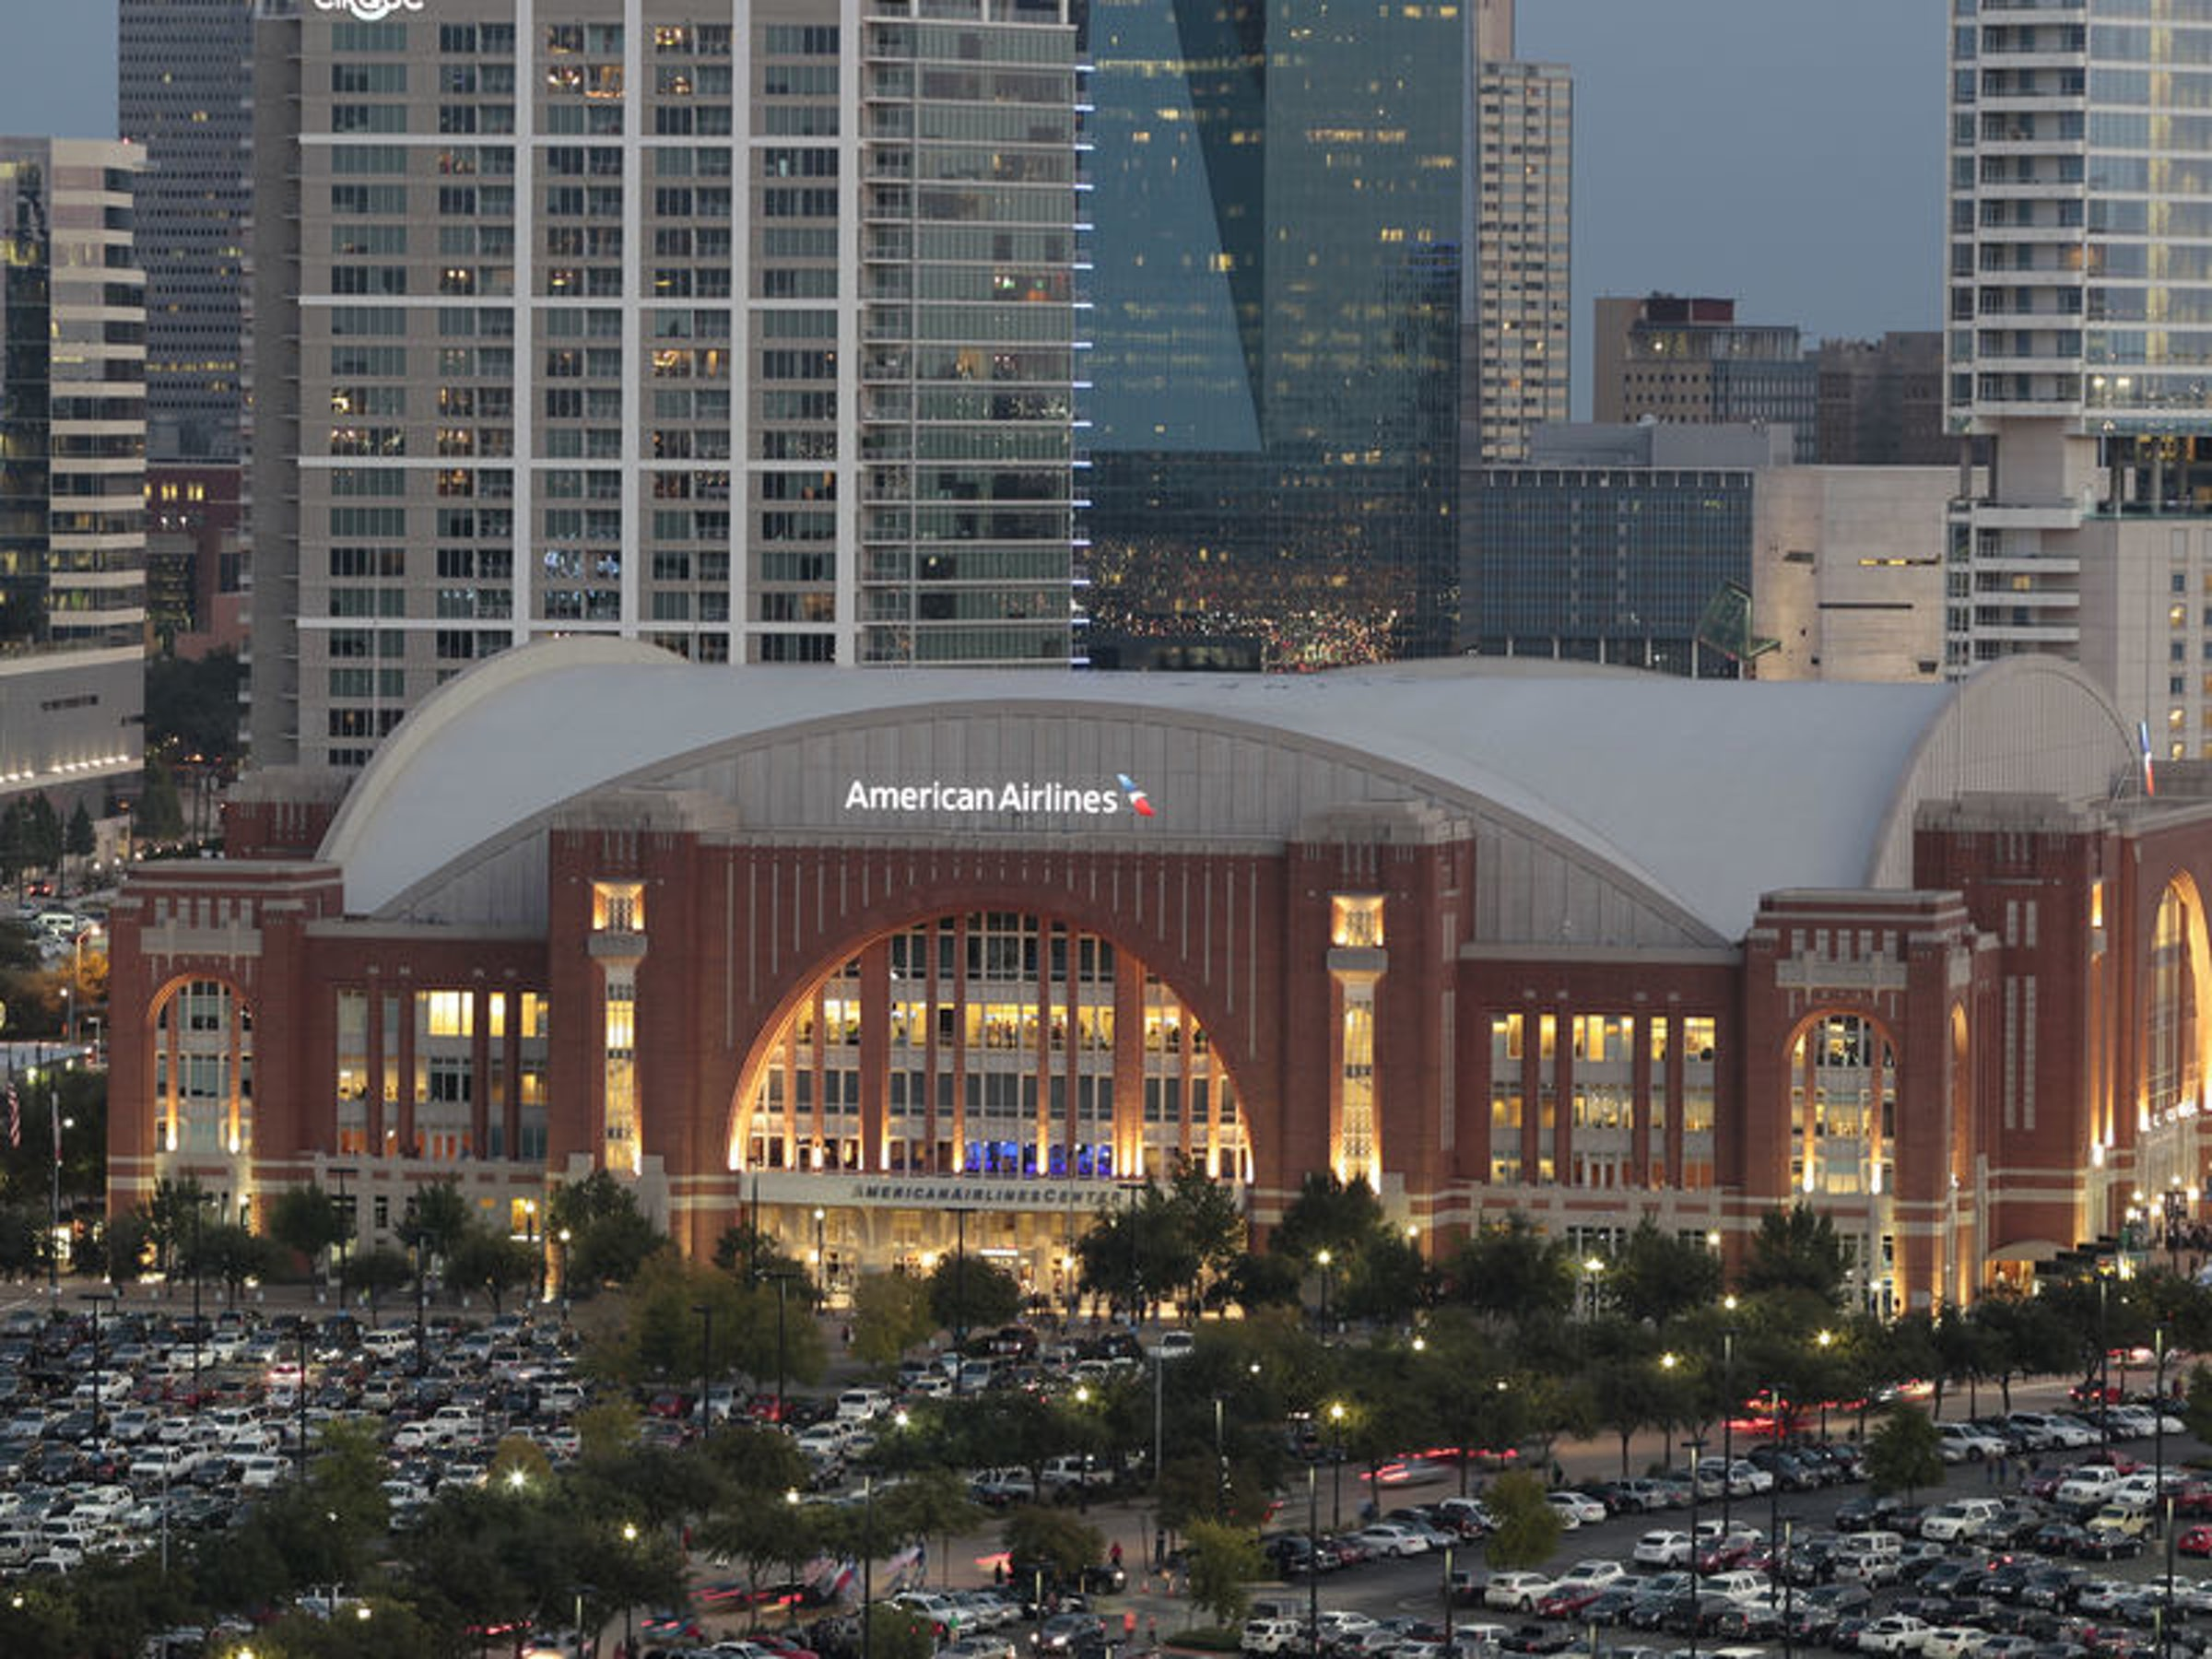 American Airlines Center in Beyond Dallas